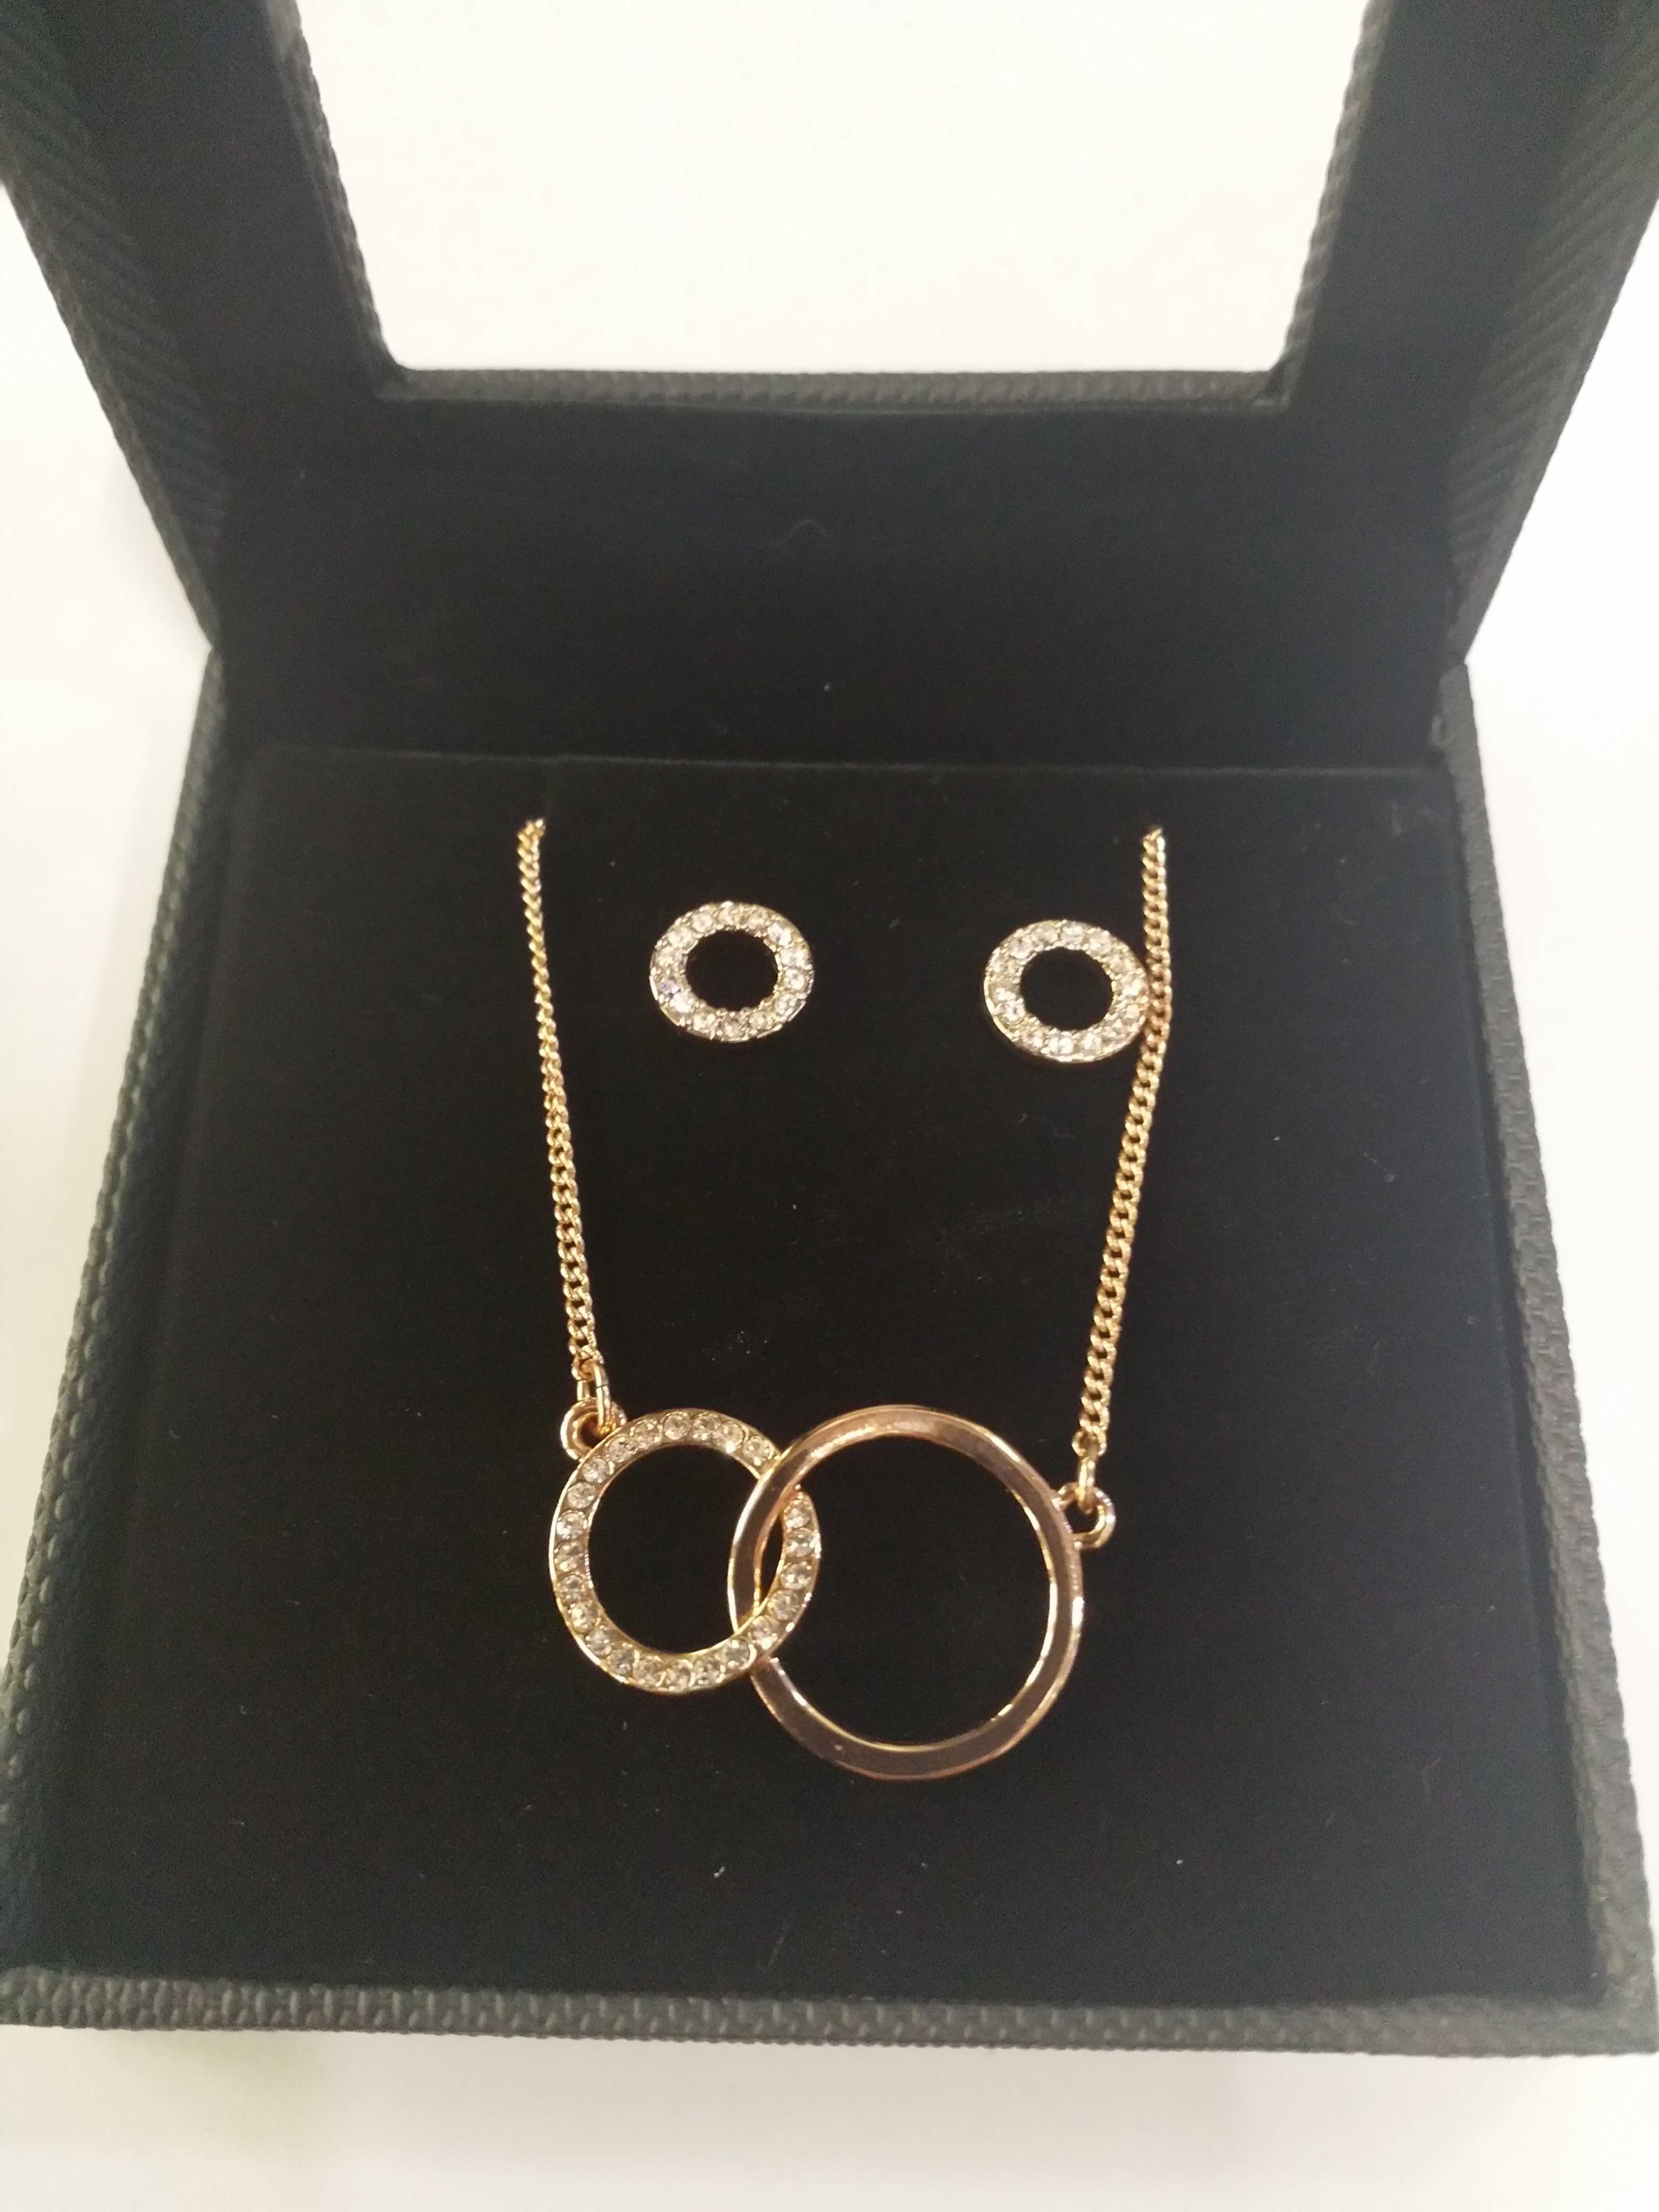 Lot 12 - 12 PILGRIM ROSE GOLD NECKLACE AND EARRING SET RRP £376.80